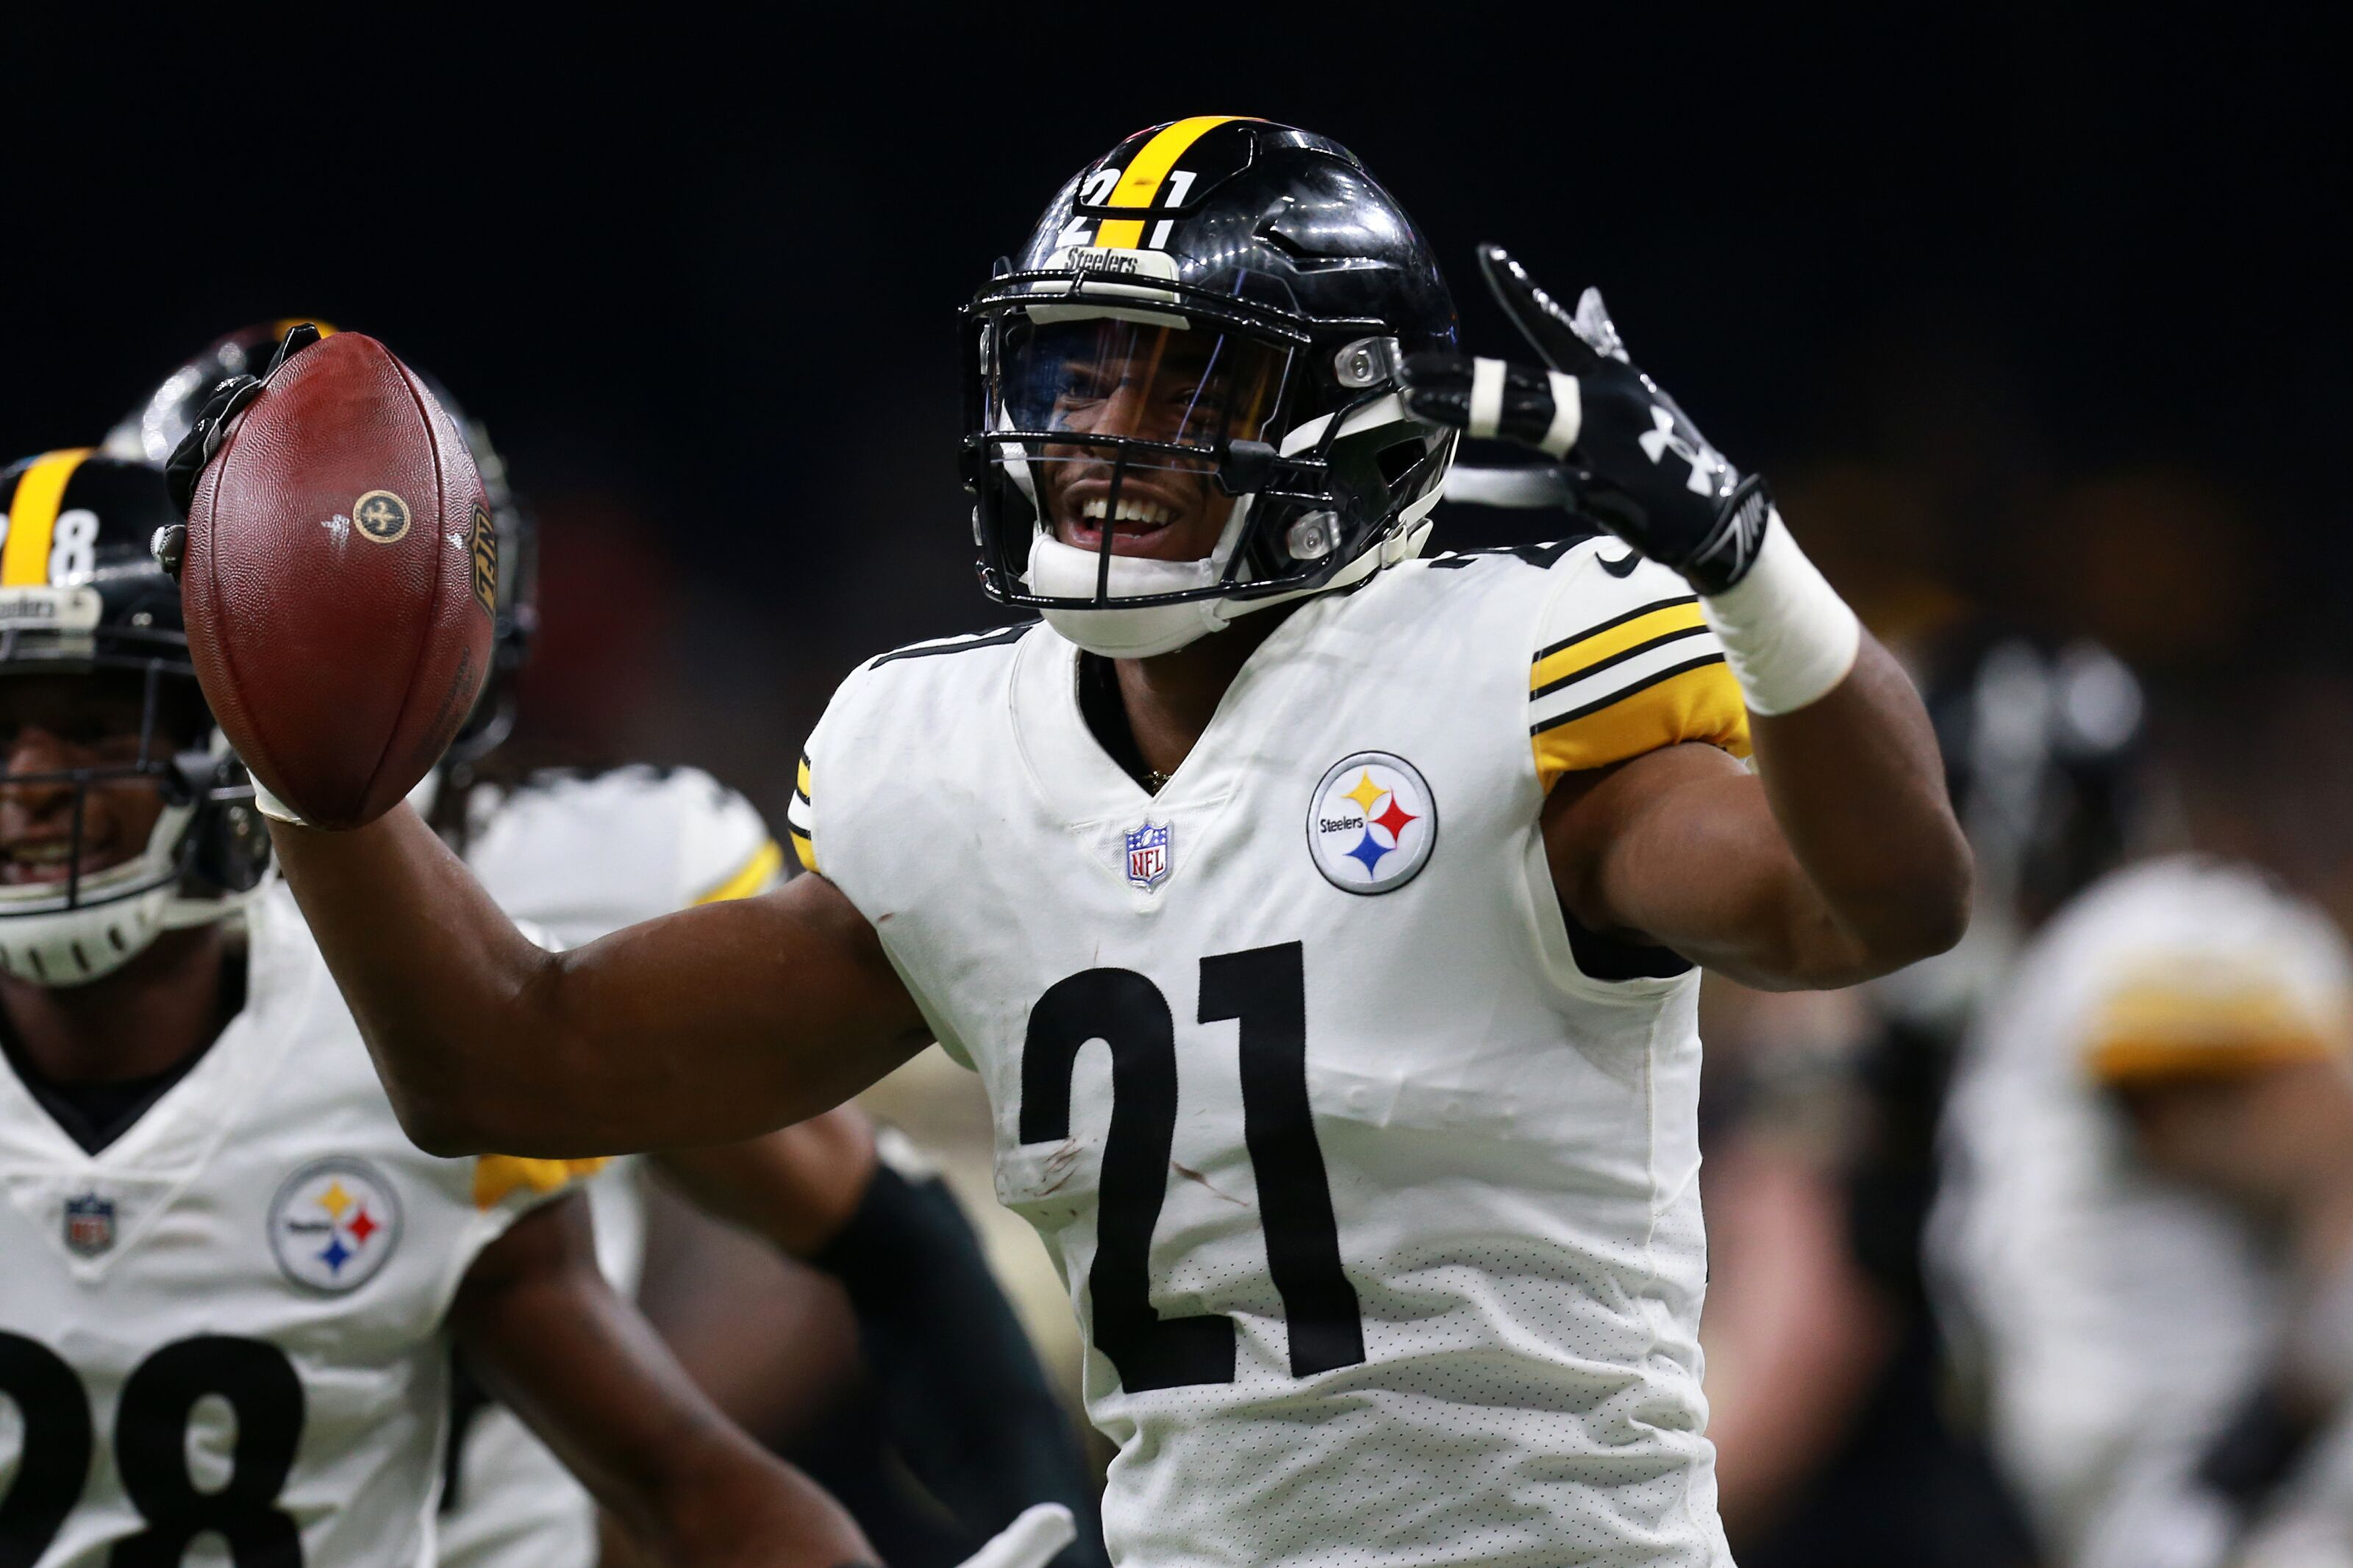 Free agent safety Sean Davis won't be part of Steelers future plans